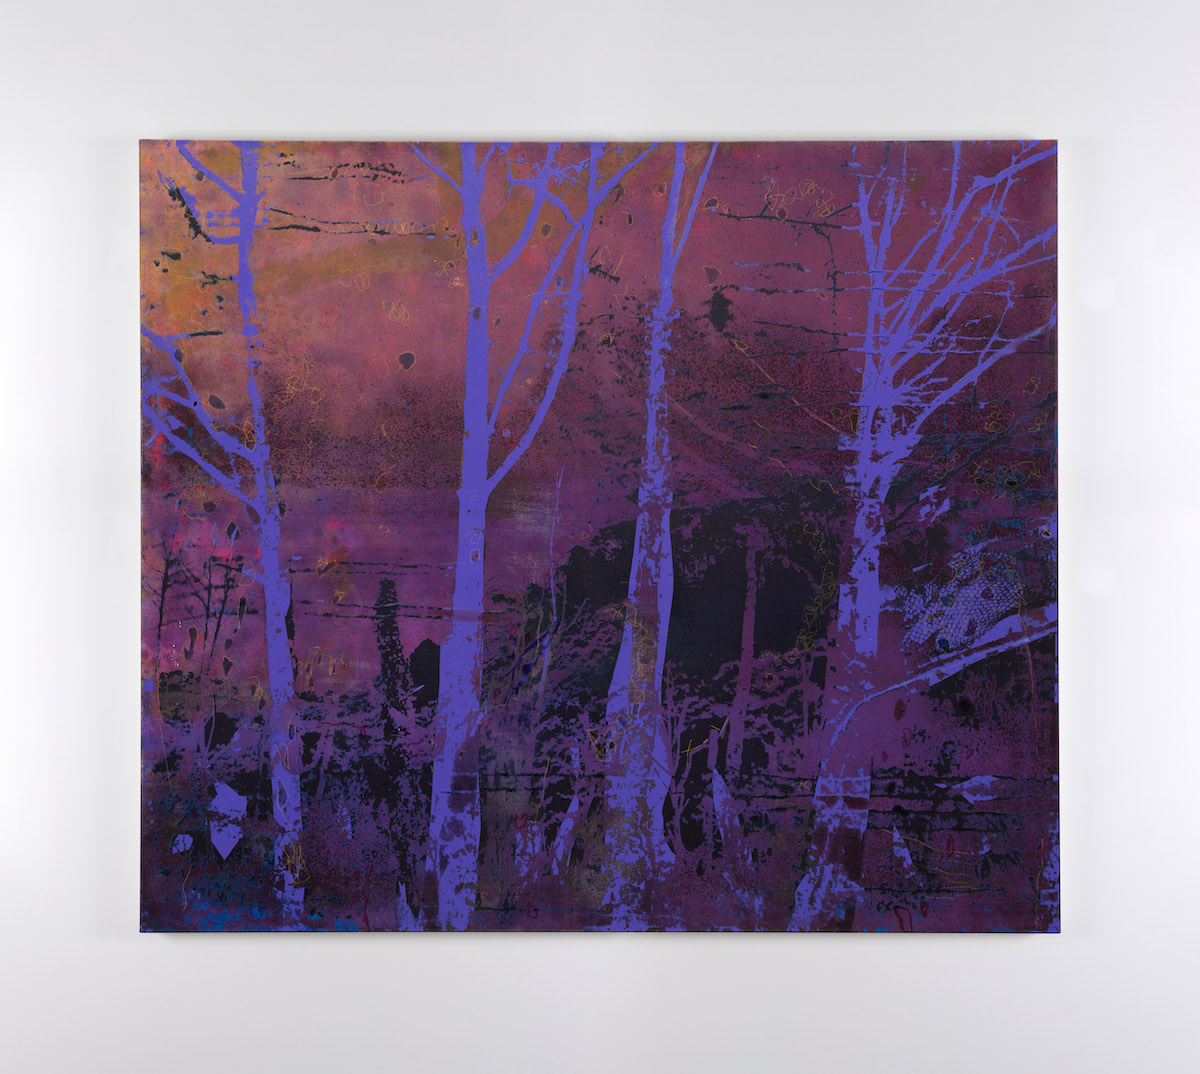 Elizabeth Magill, Variation (2),2021, oil and screenprint on canvas, 128 x 148 cm / 50.4 x 58.3 in | Elizabeth Magill: Red Stars and Variations | Saturday 29 May – Saturday 10 July 2021 | Kerlin Gallery